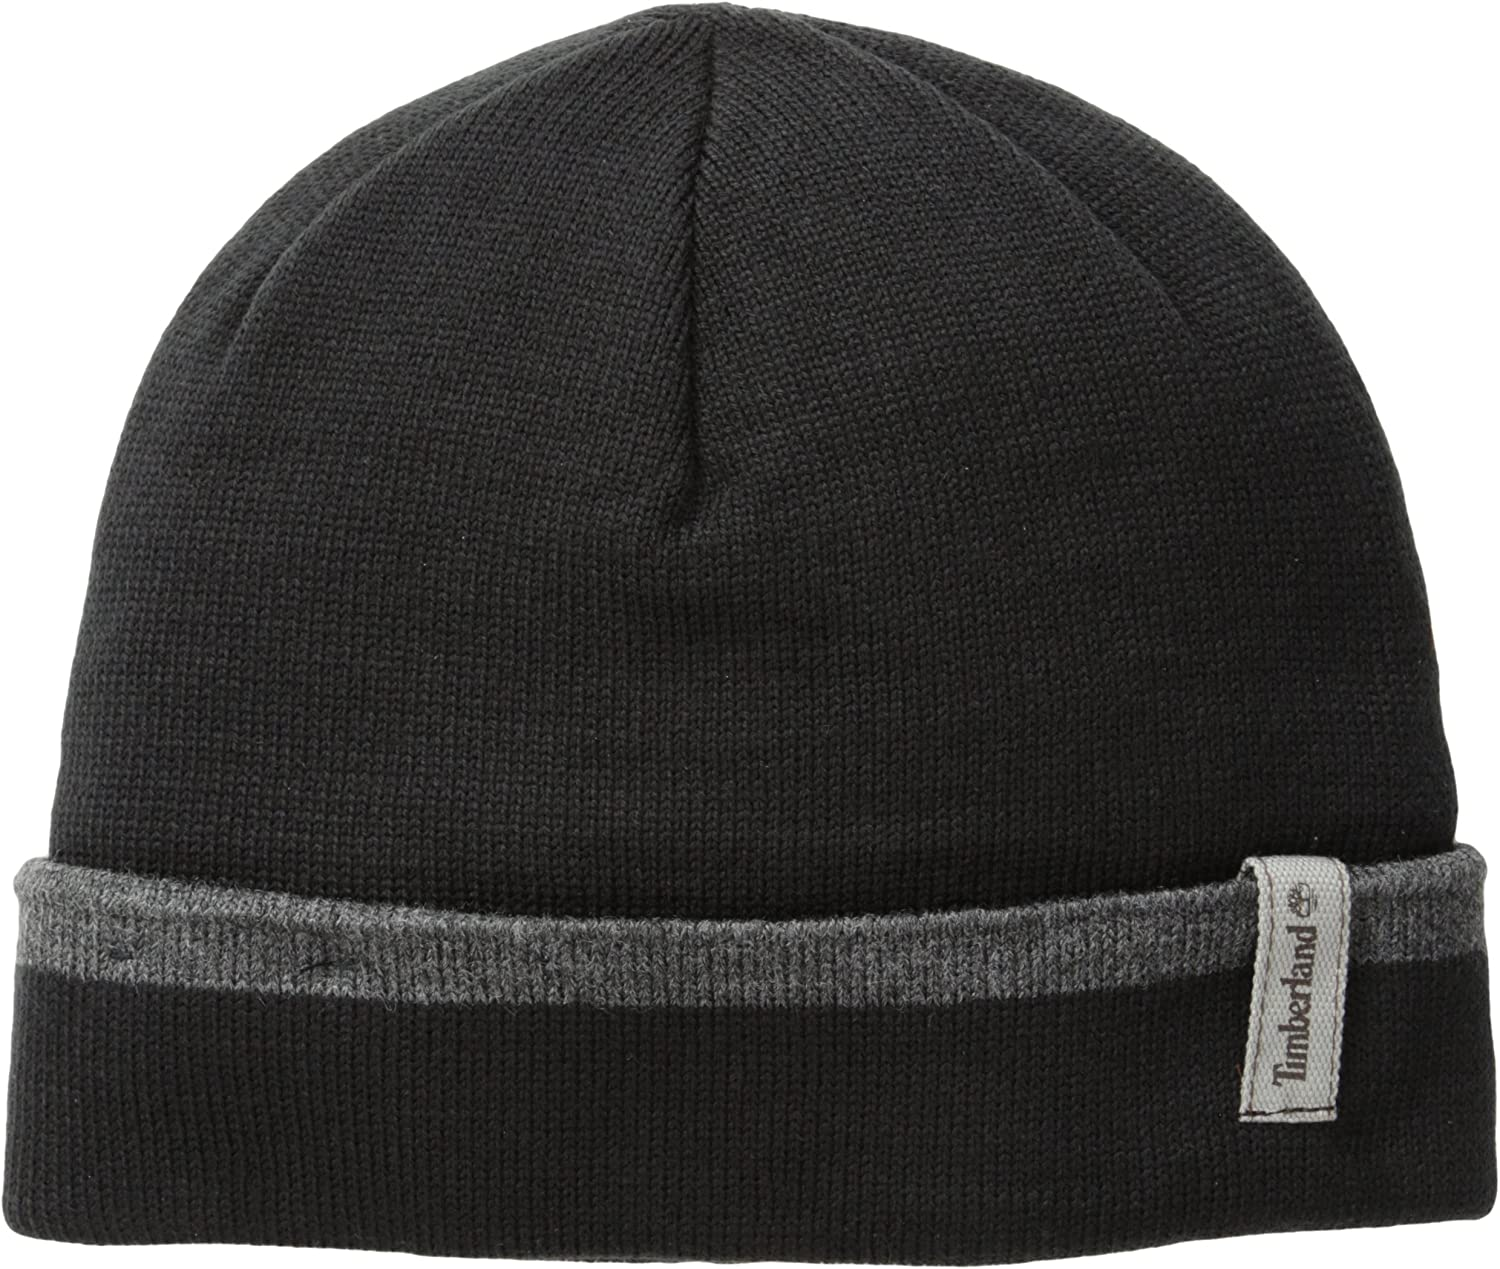 ! Super beauty product restock quality top! Timberland Fees free Men's Stripe Cap Watch